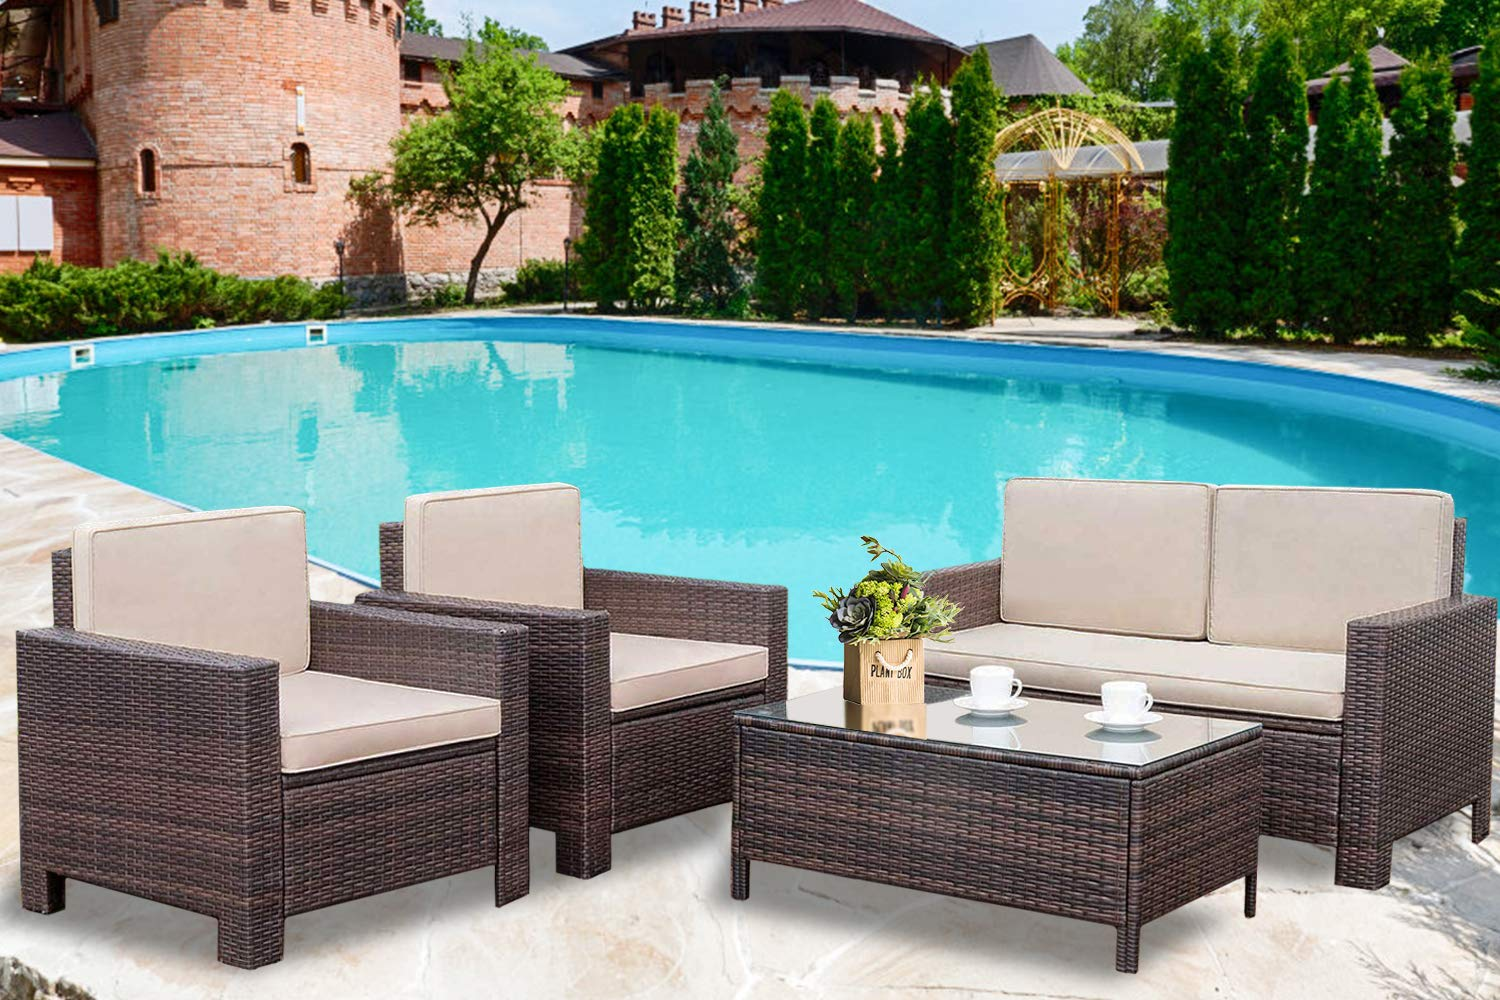 Amazon Com Patio Furniture Set 4 Pieces Outdoor Wicker Sofa Rattan